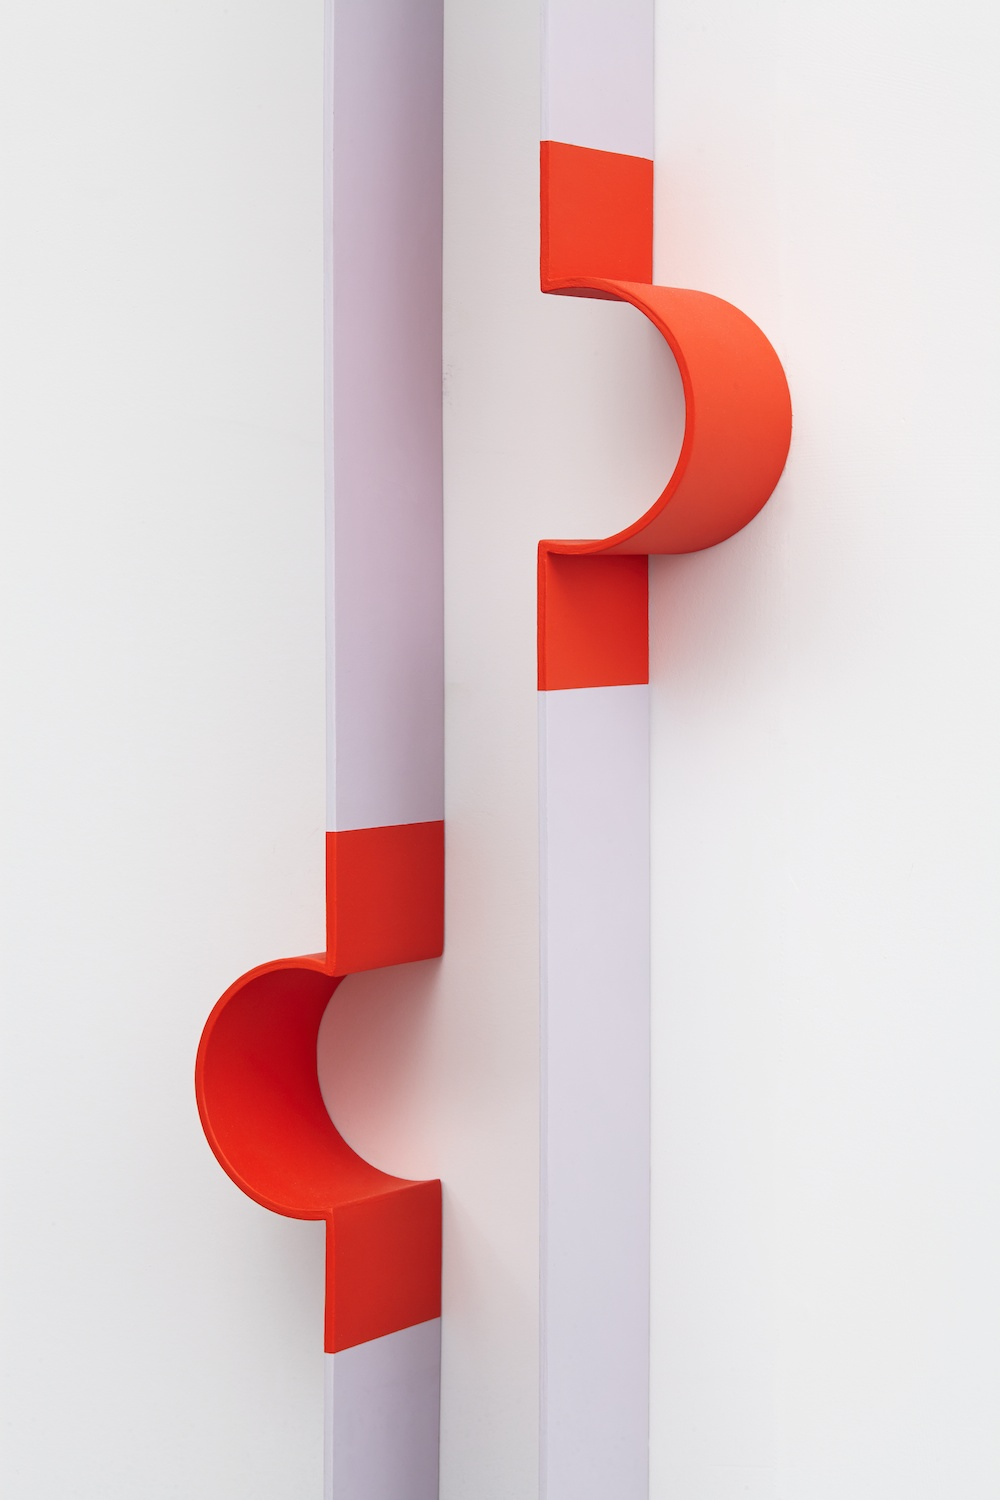 Lisa Williamson  Bump, Neoprene  (Detail) 2013 Acrylic on powder-coated steel 80h x 14w x 4d in LW121